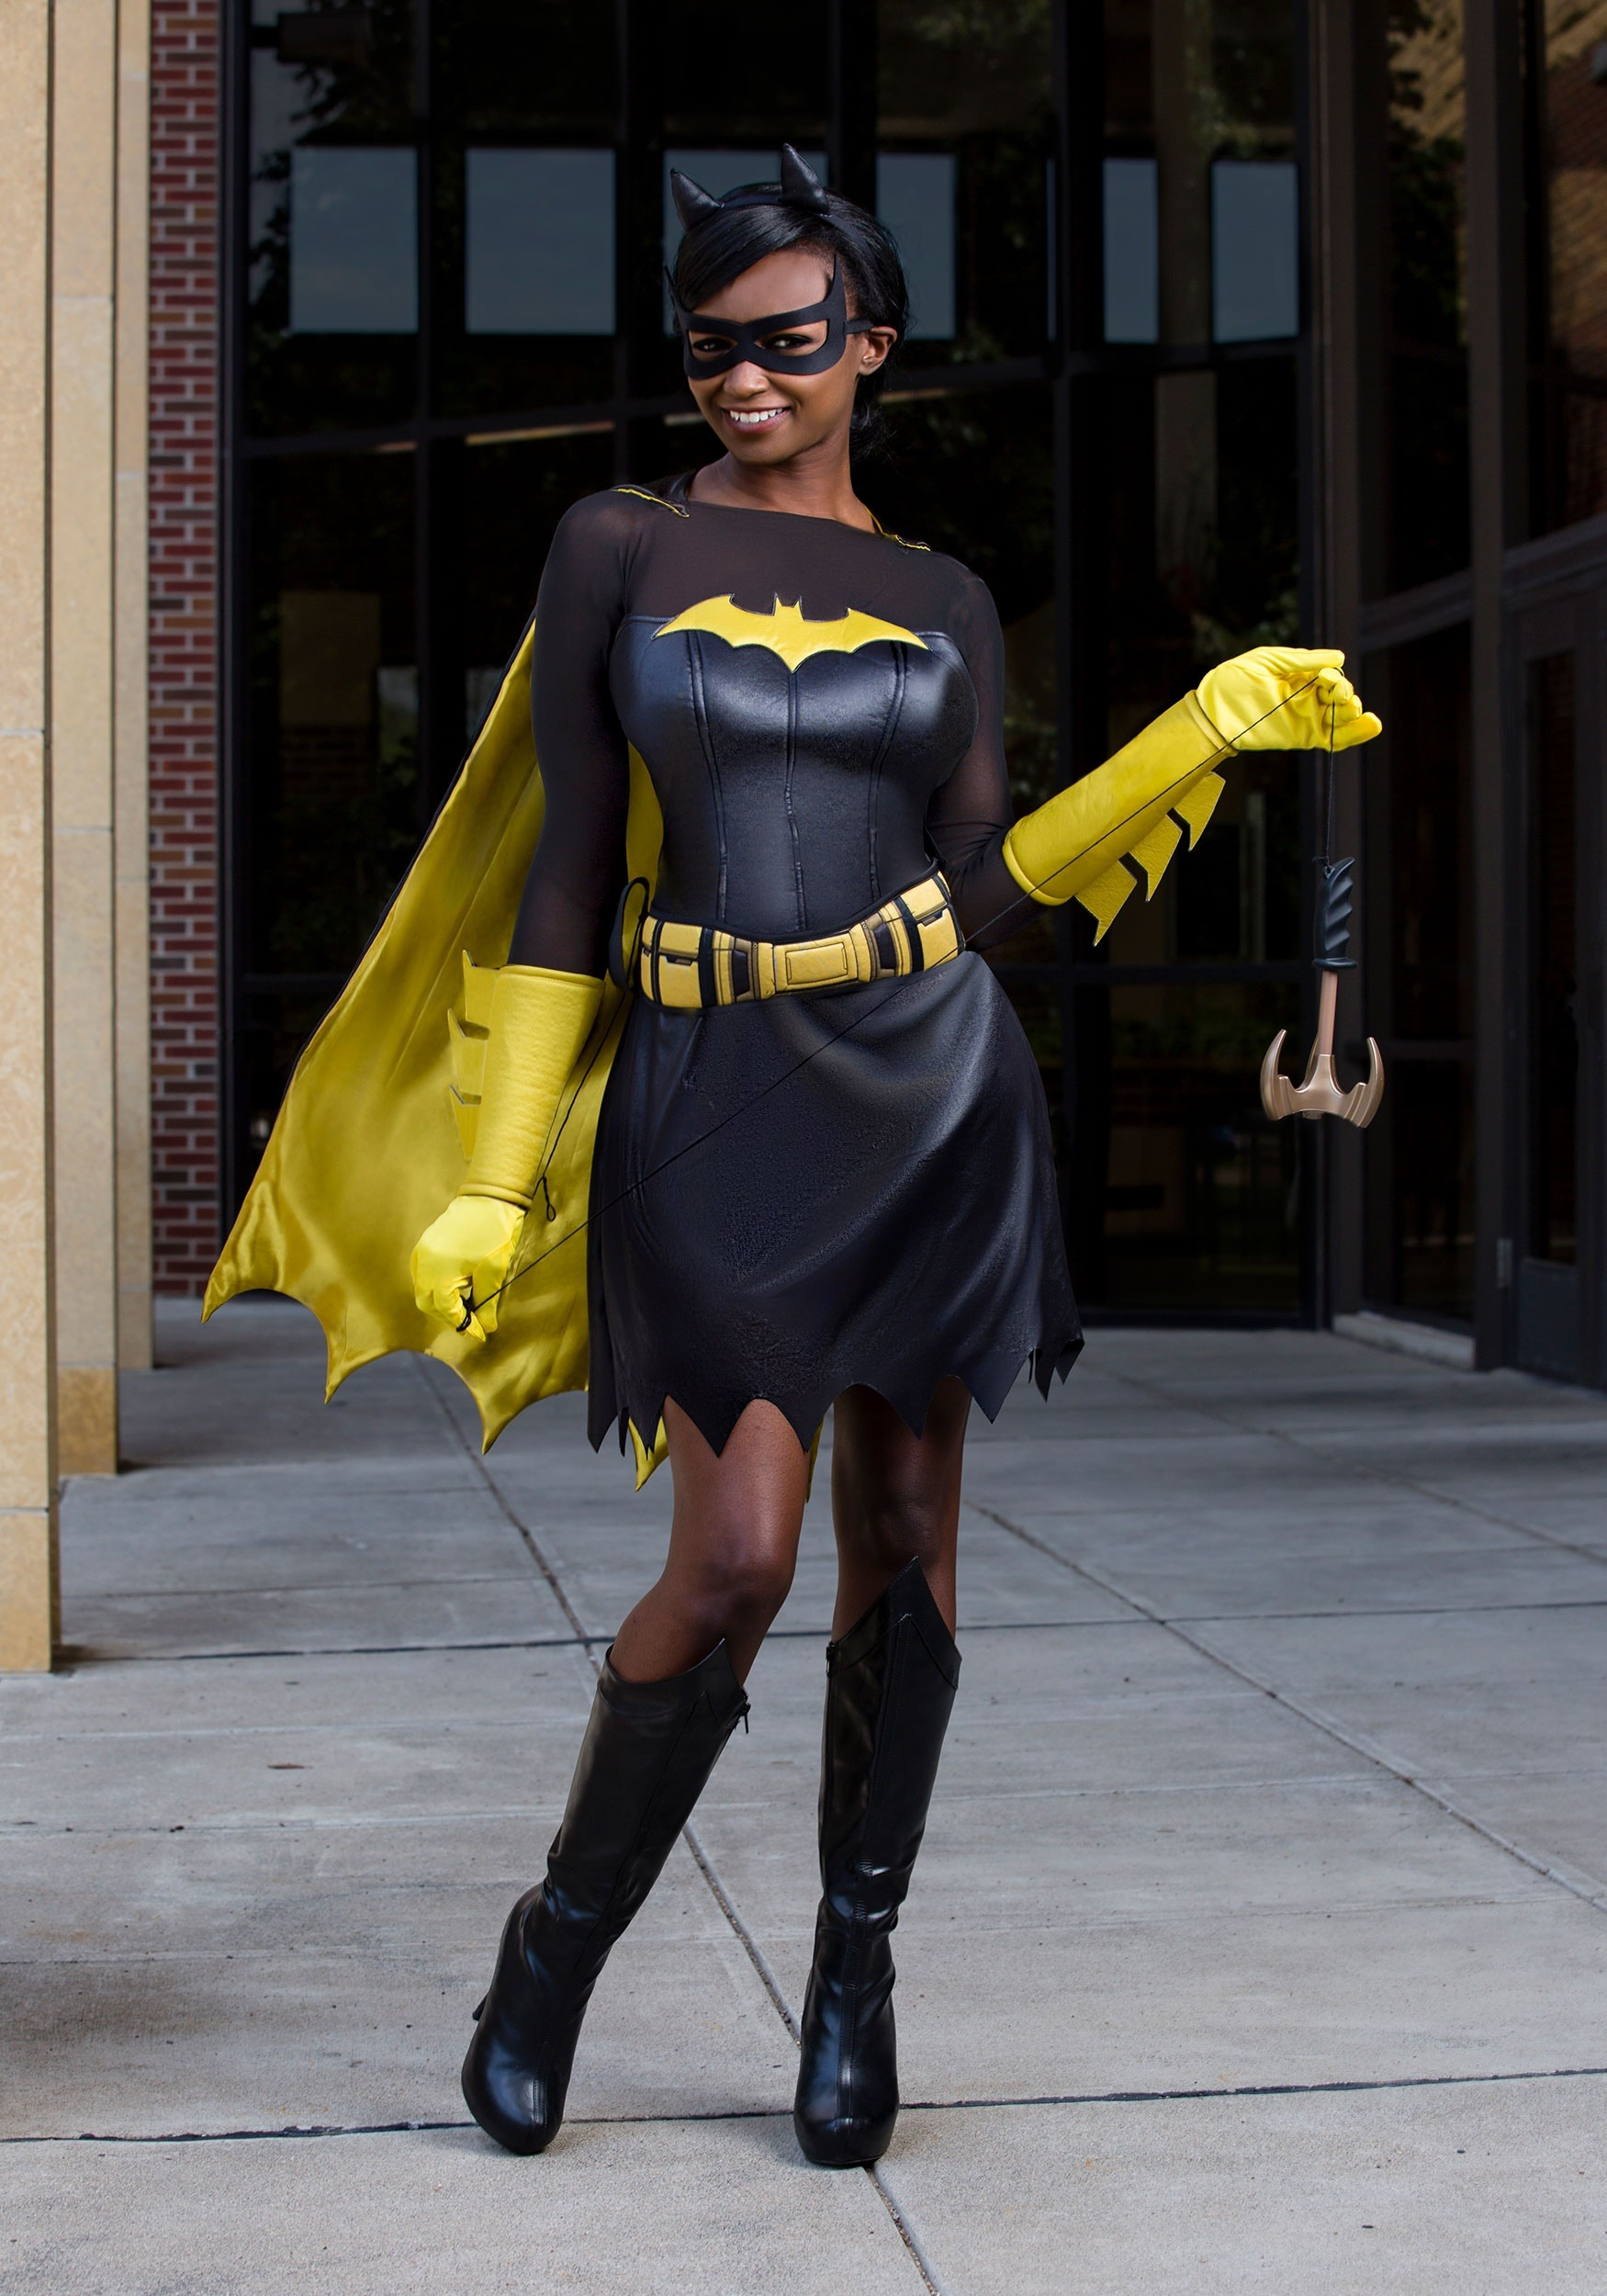 DC Deluxe Womenu0027s Batgirl Costume & Batgirl Costumes - Adult Child Sexy Batwoman Halloween Costumes